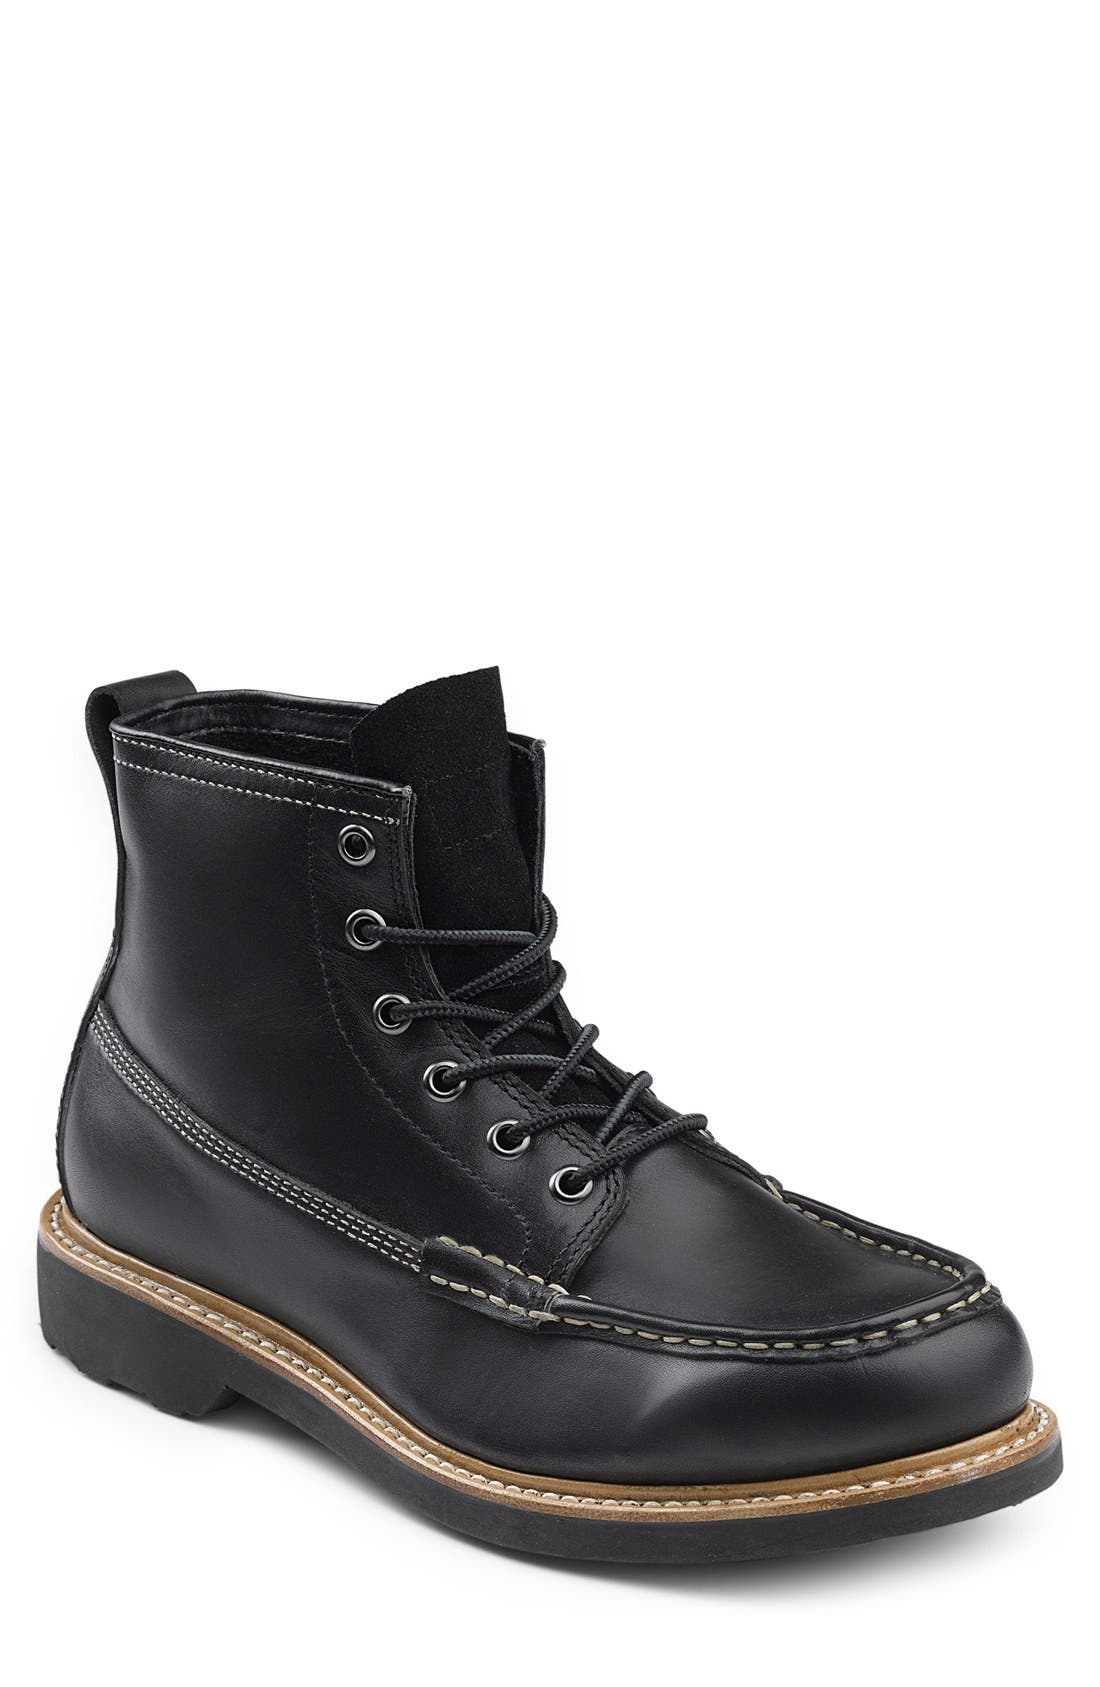 'Ashby' Moc Toe Boot,                         Main,                         color,